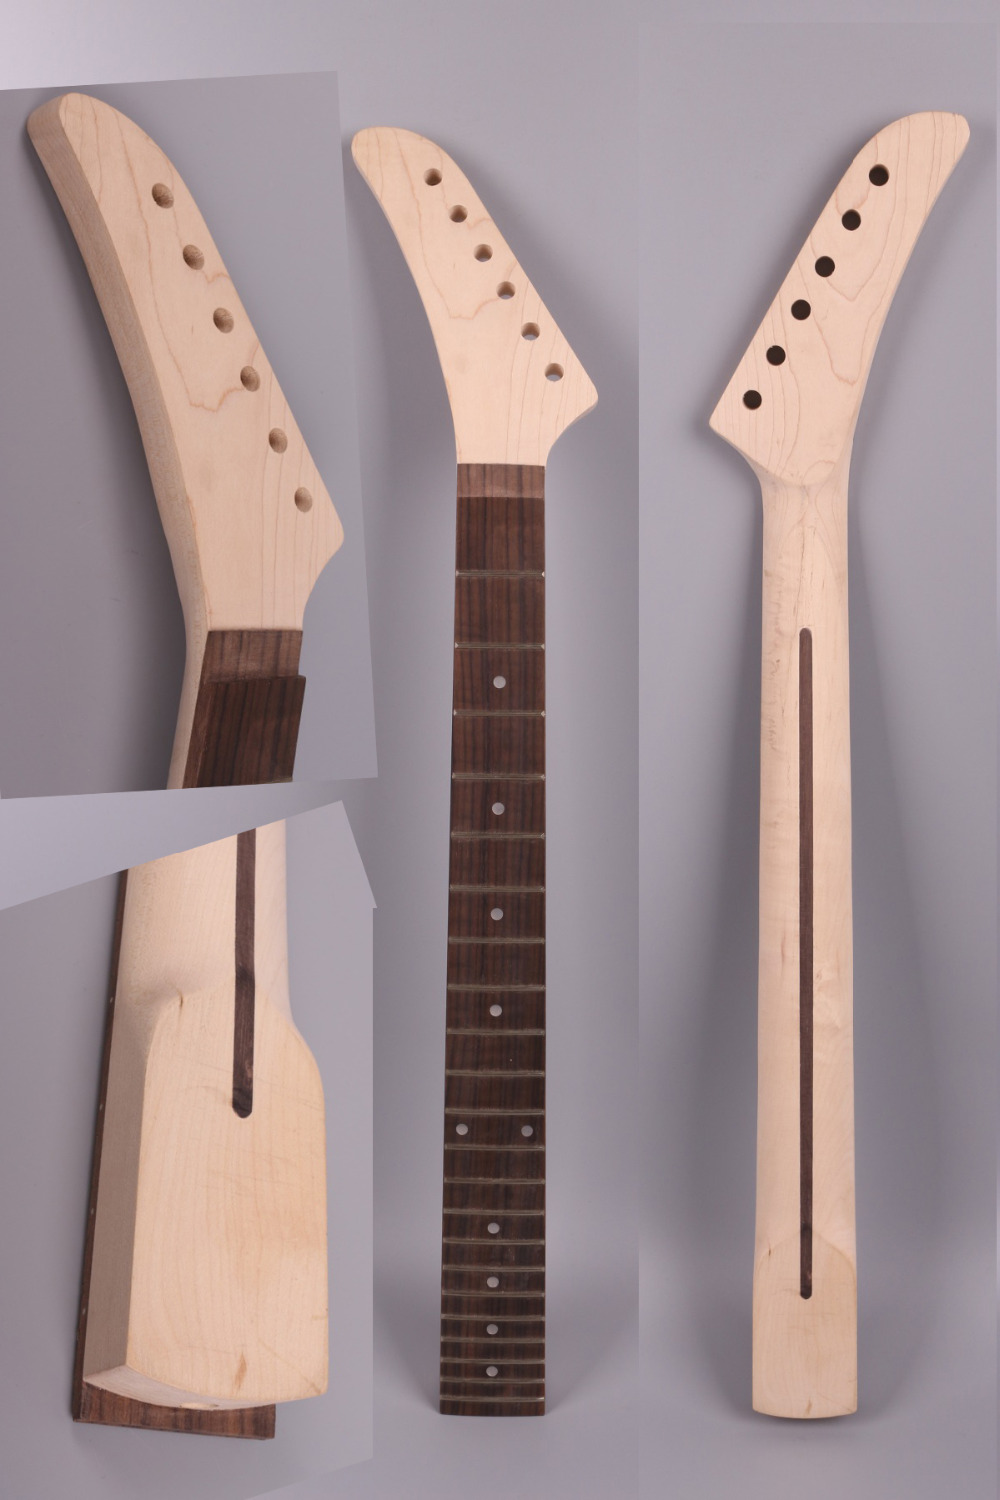 electric guitar neck 25.5 inch 22 fret maple banana headstock rosewood fingerboard Left hand maple guitar neck for electric guitar neck rosewood fingerboard 22 fret white dots acurated heel